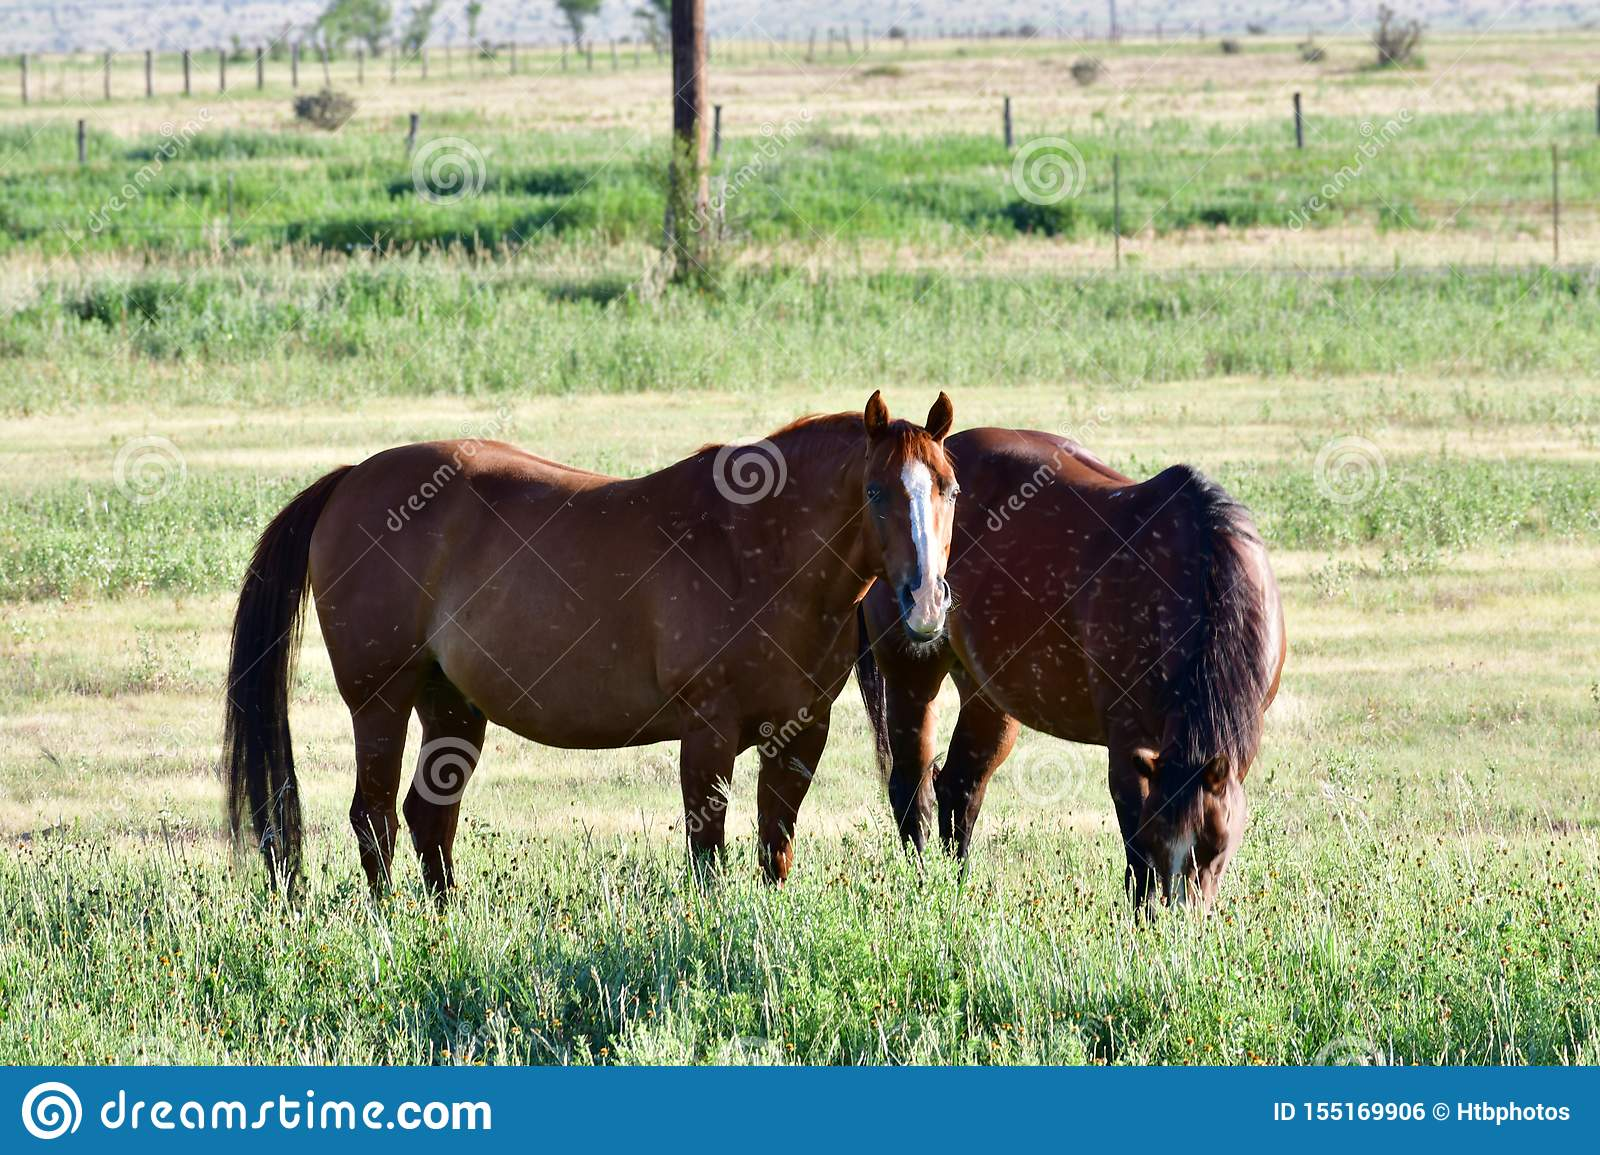 American Quarter Horse In A Field With Horse Trailer Stock Photo Image Of Distances Grain 155169906